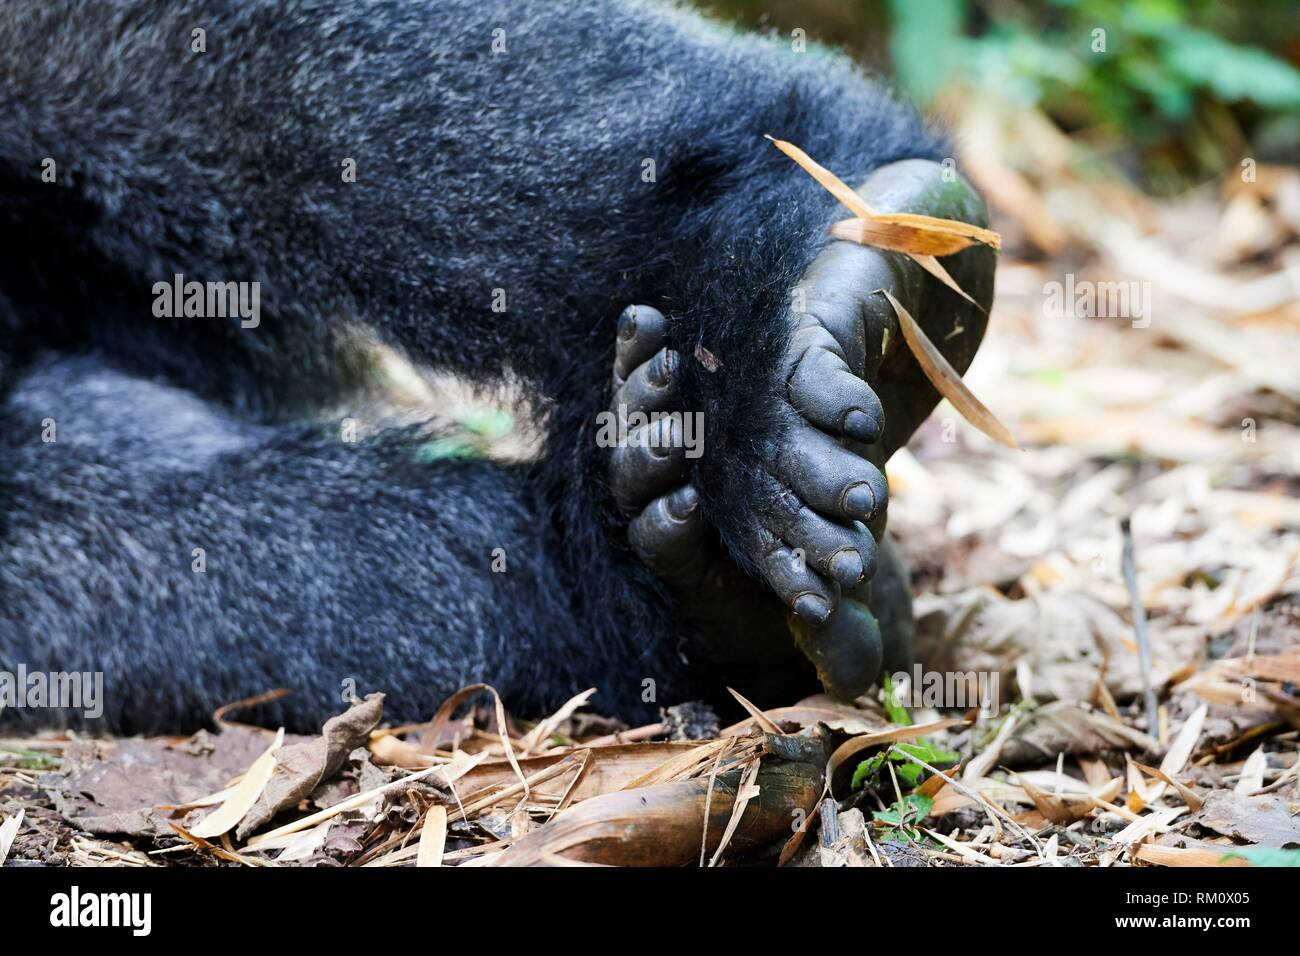 Close up on foot of Moutain gorilla (Gorilla beringei beringei) Virunga National Park, North Kivu, Democratic Republic of Congo, Africa. - Stock Image